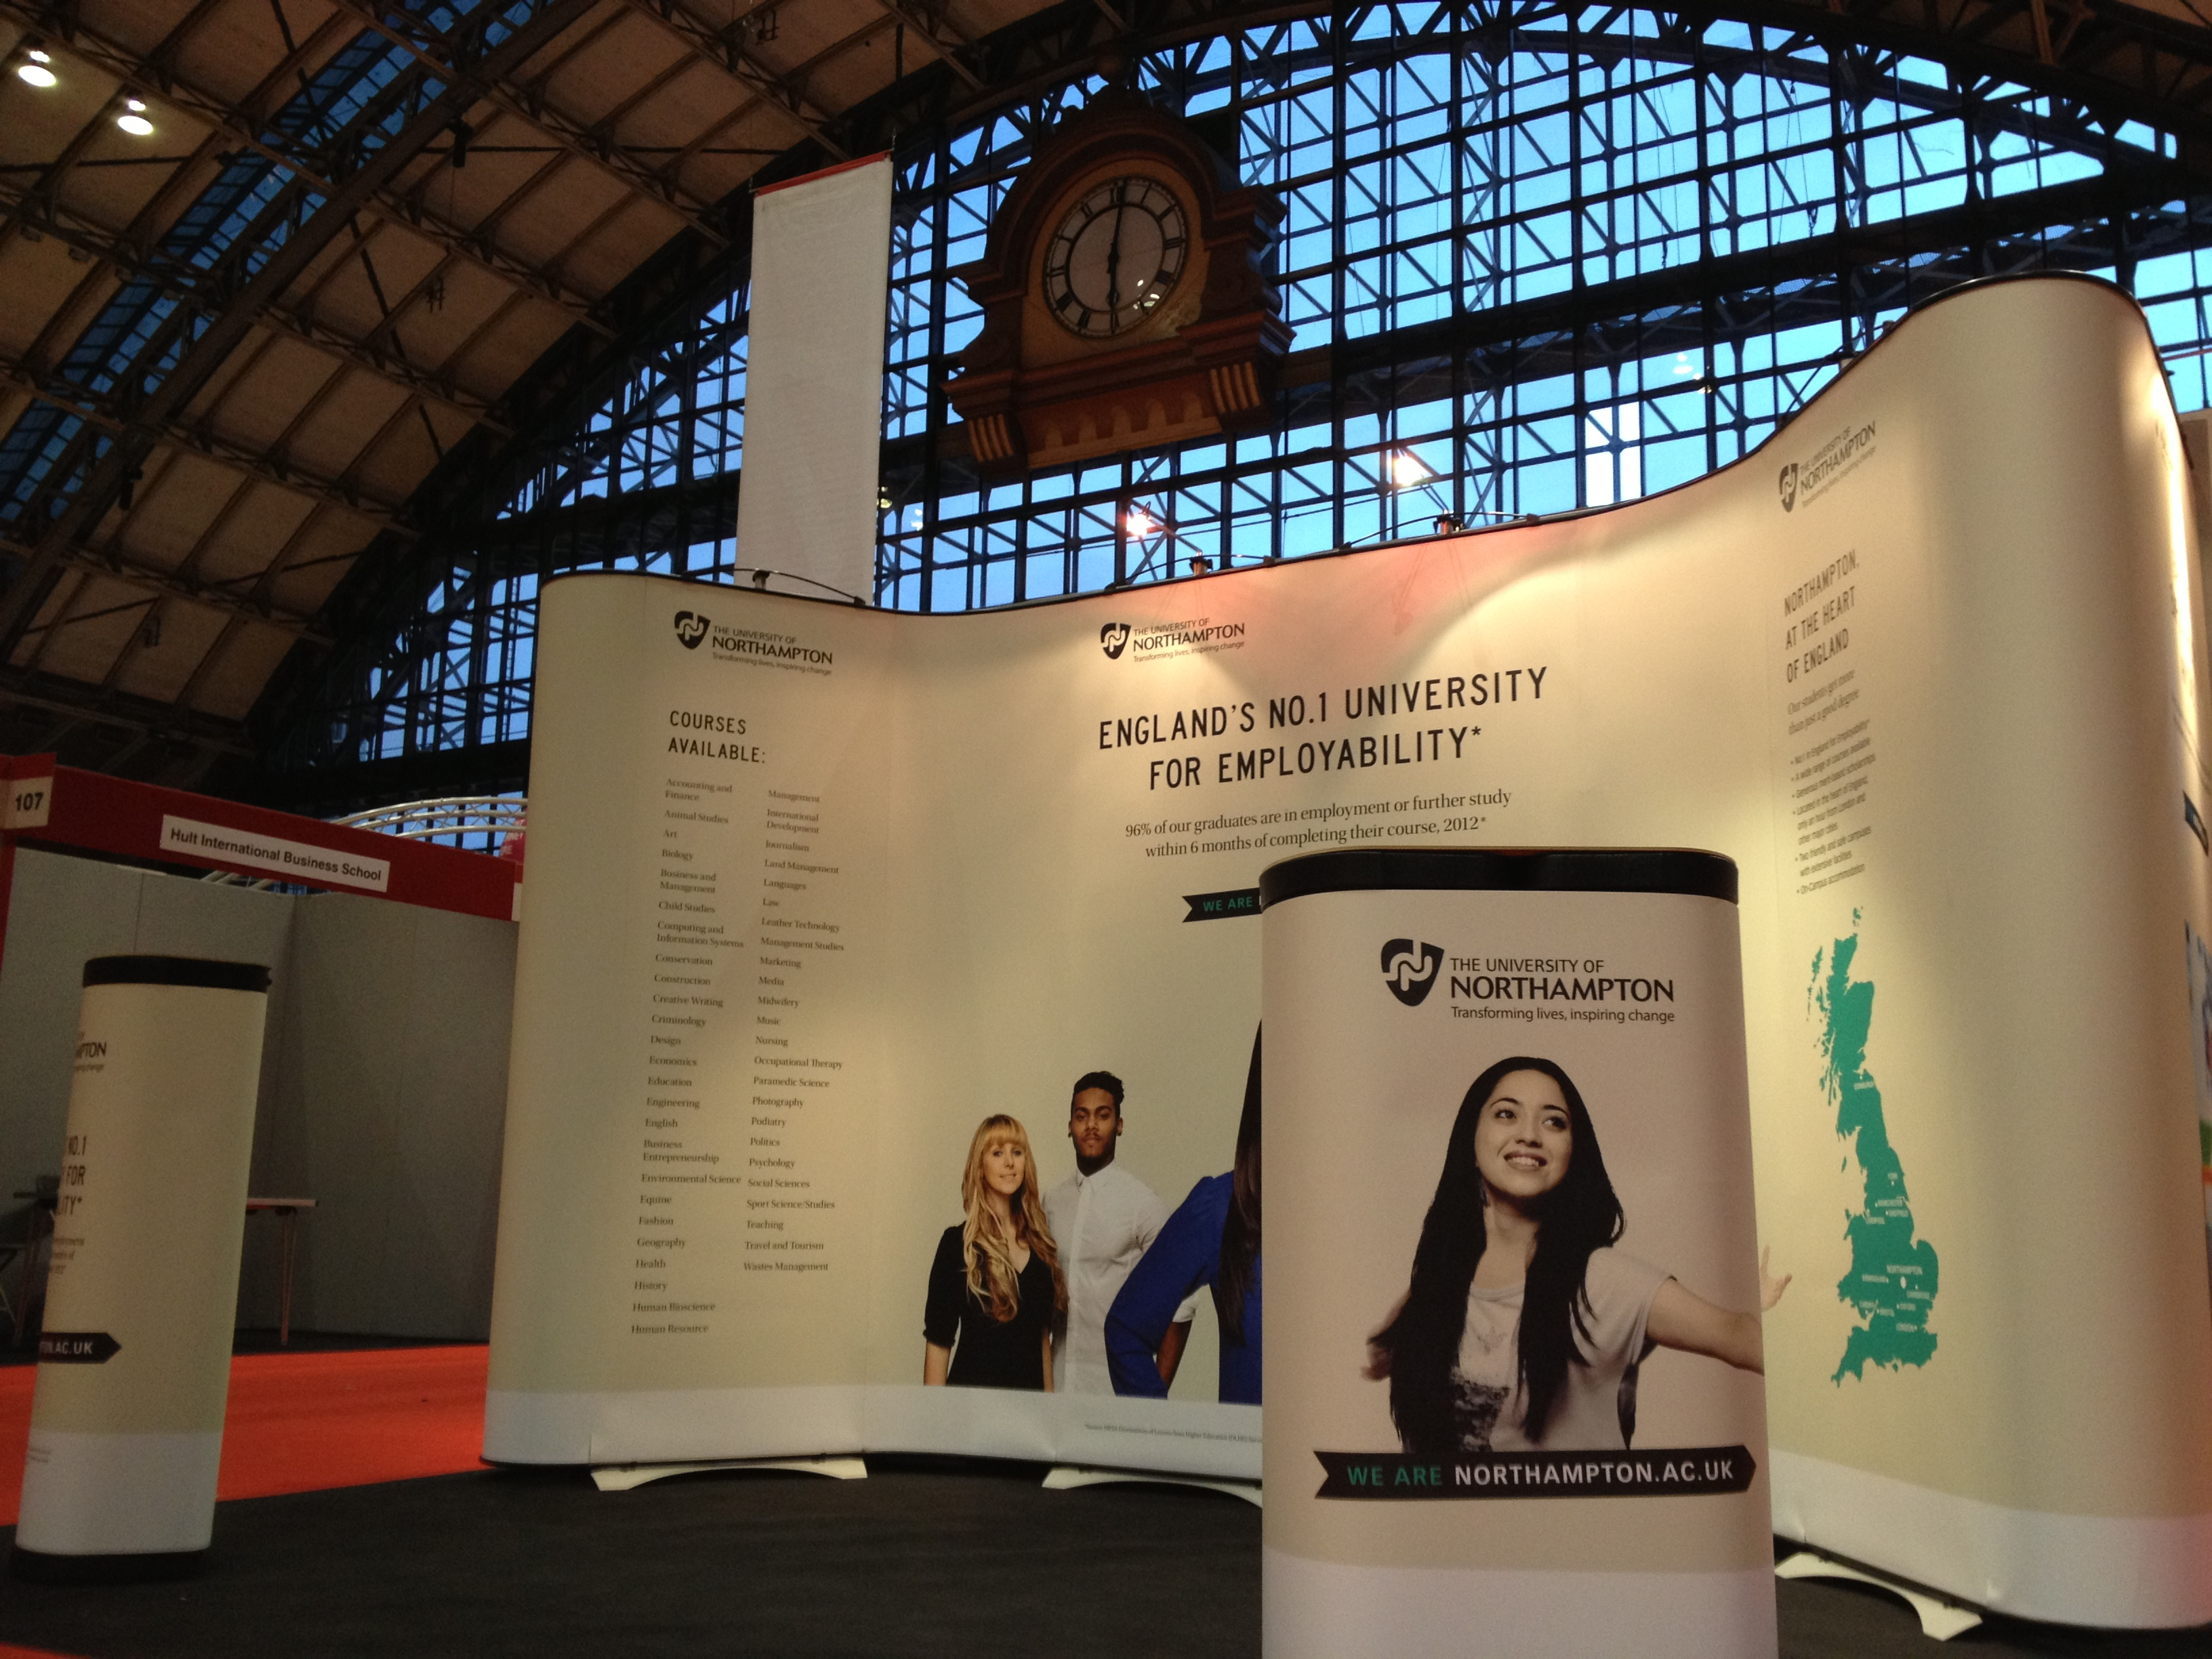 Exhibition Stand Northampton : Just digital large format graphics displays and exhibition stands